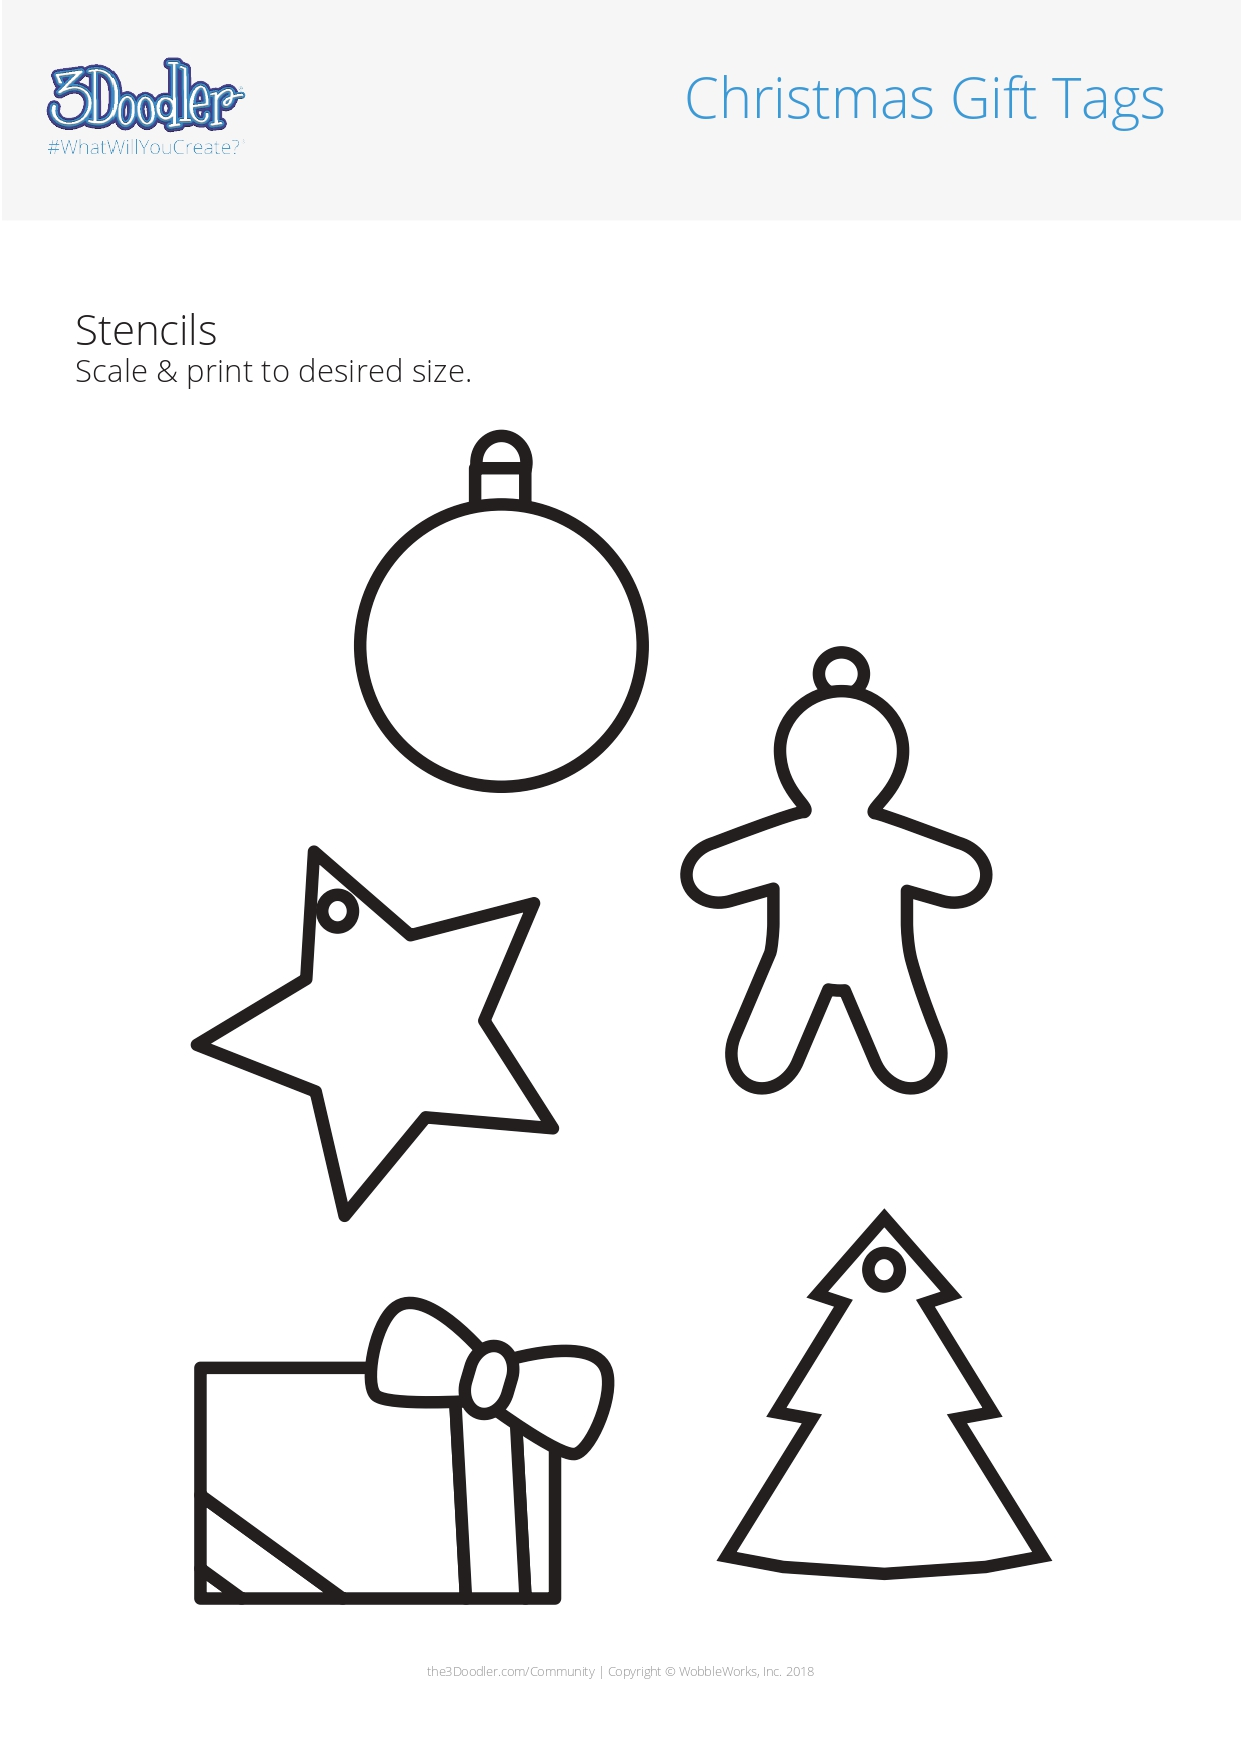 3D Pen Stencil Template Christmas Gift Tags